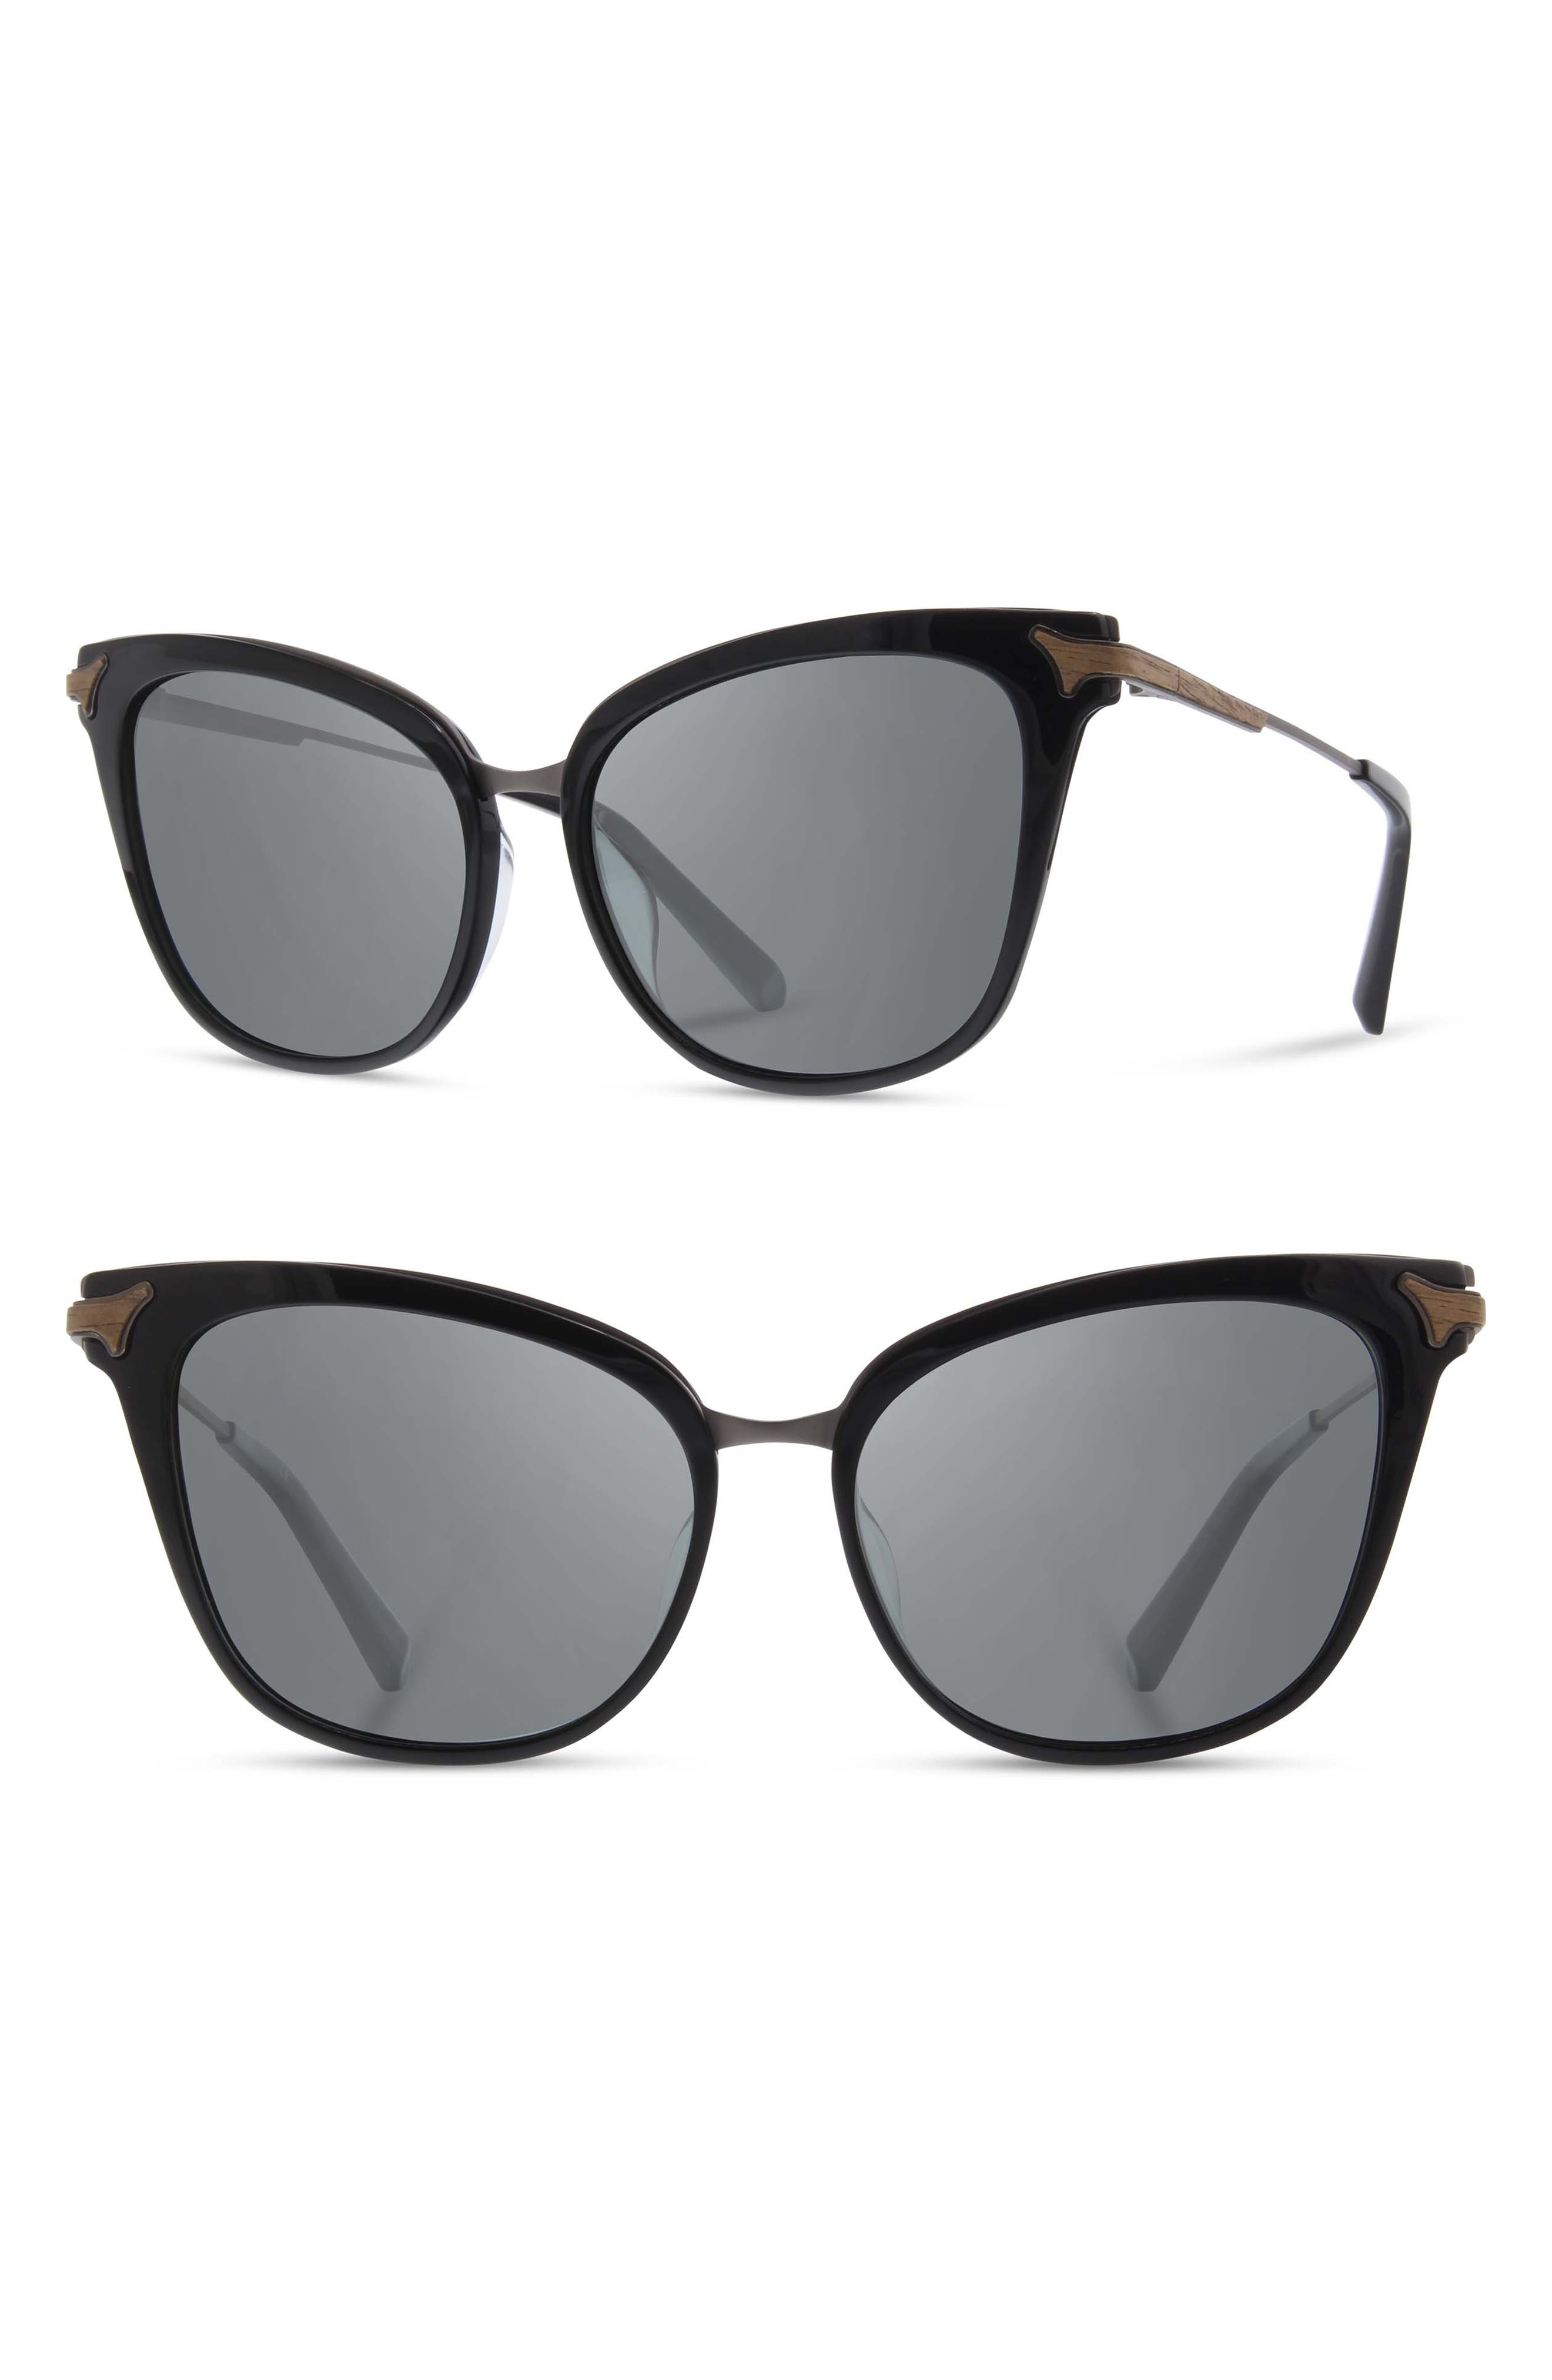 Shwood Arlene 5m Polarized Cat Eye Sunglasses - Black/ Gunmetal/ Grey